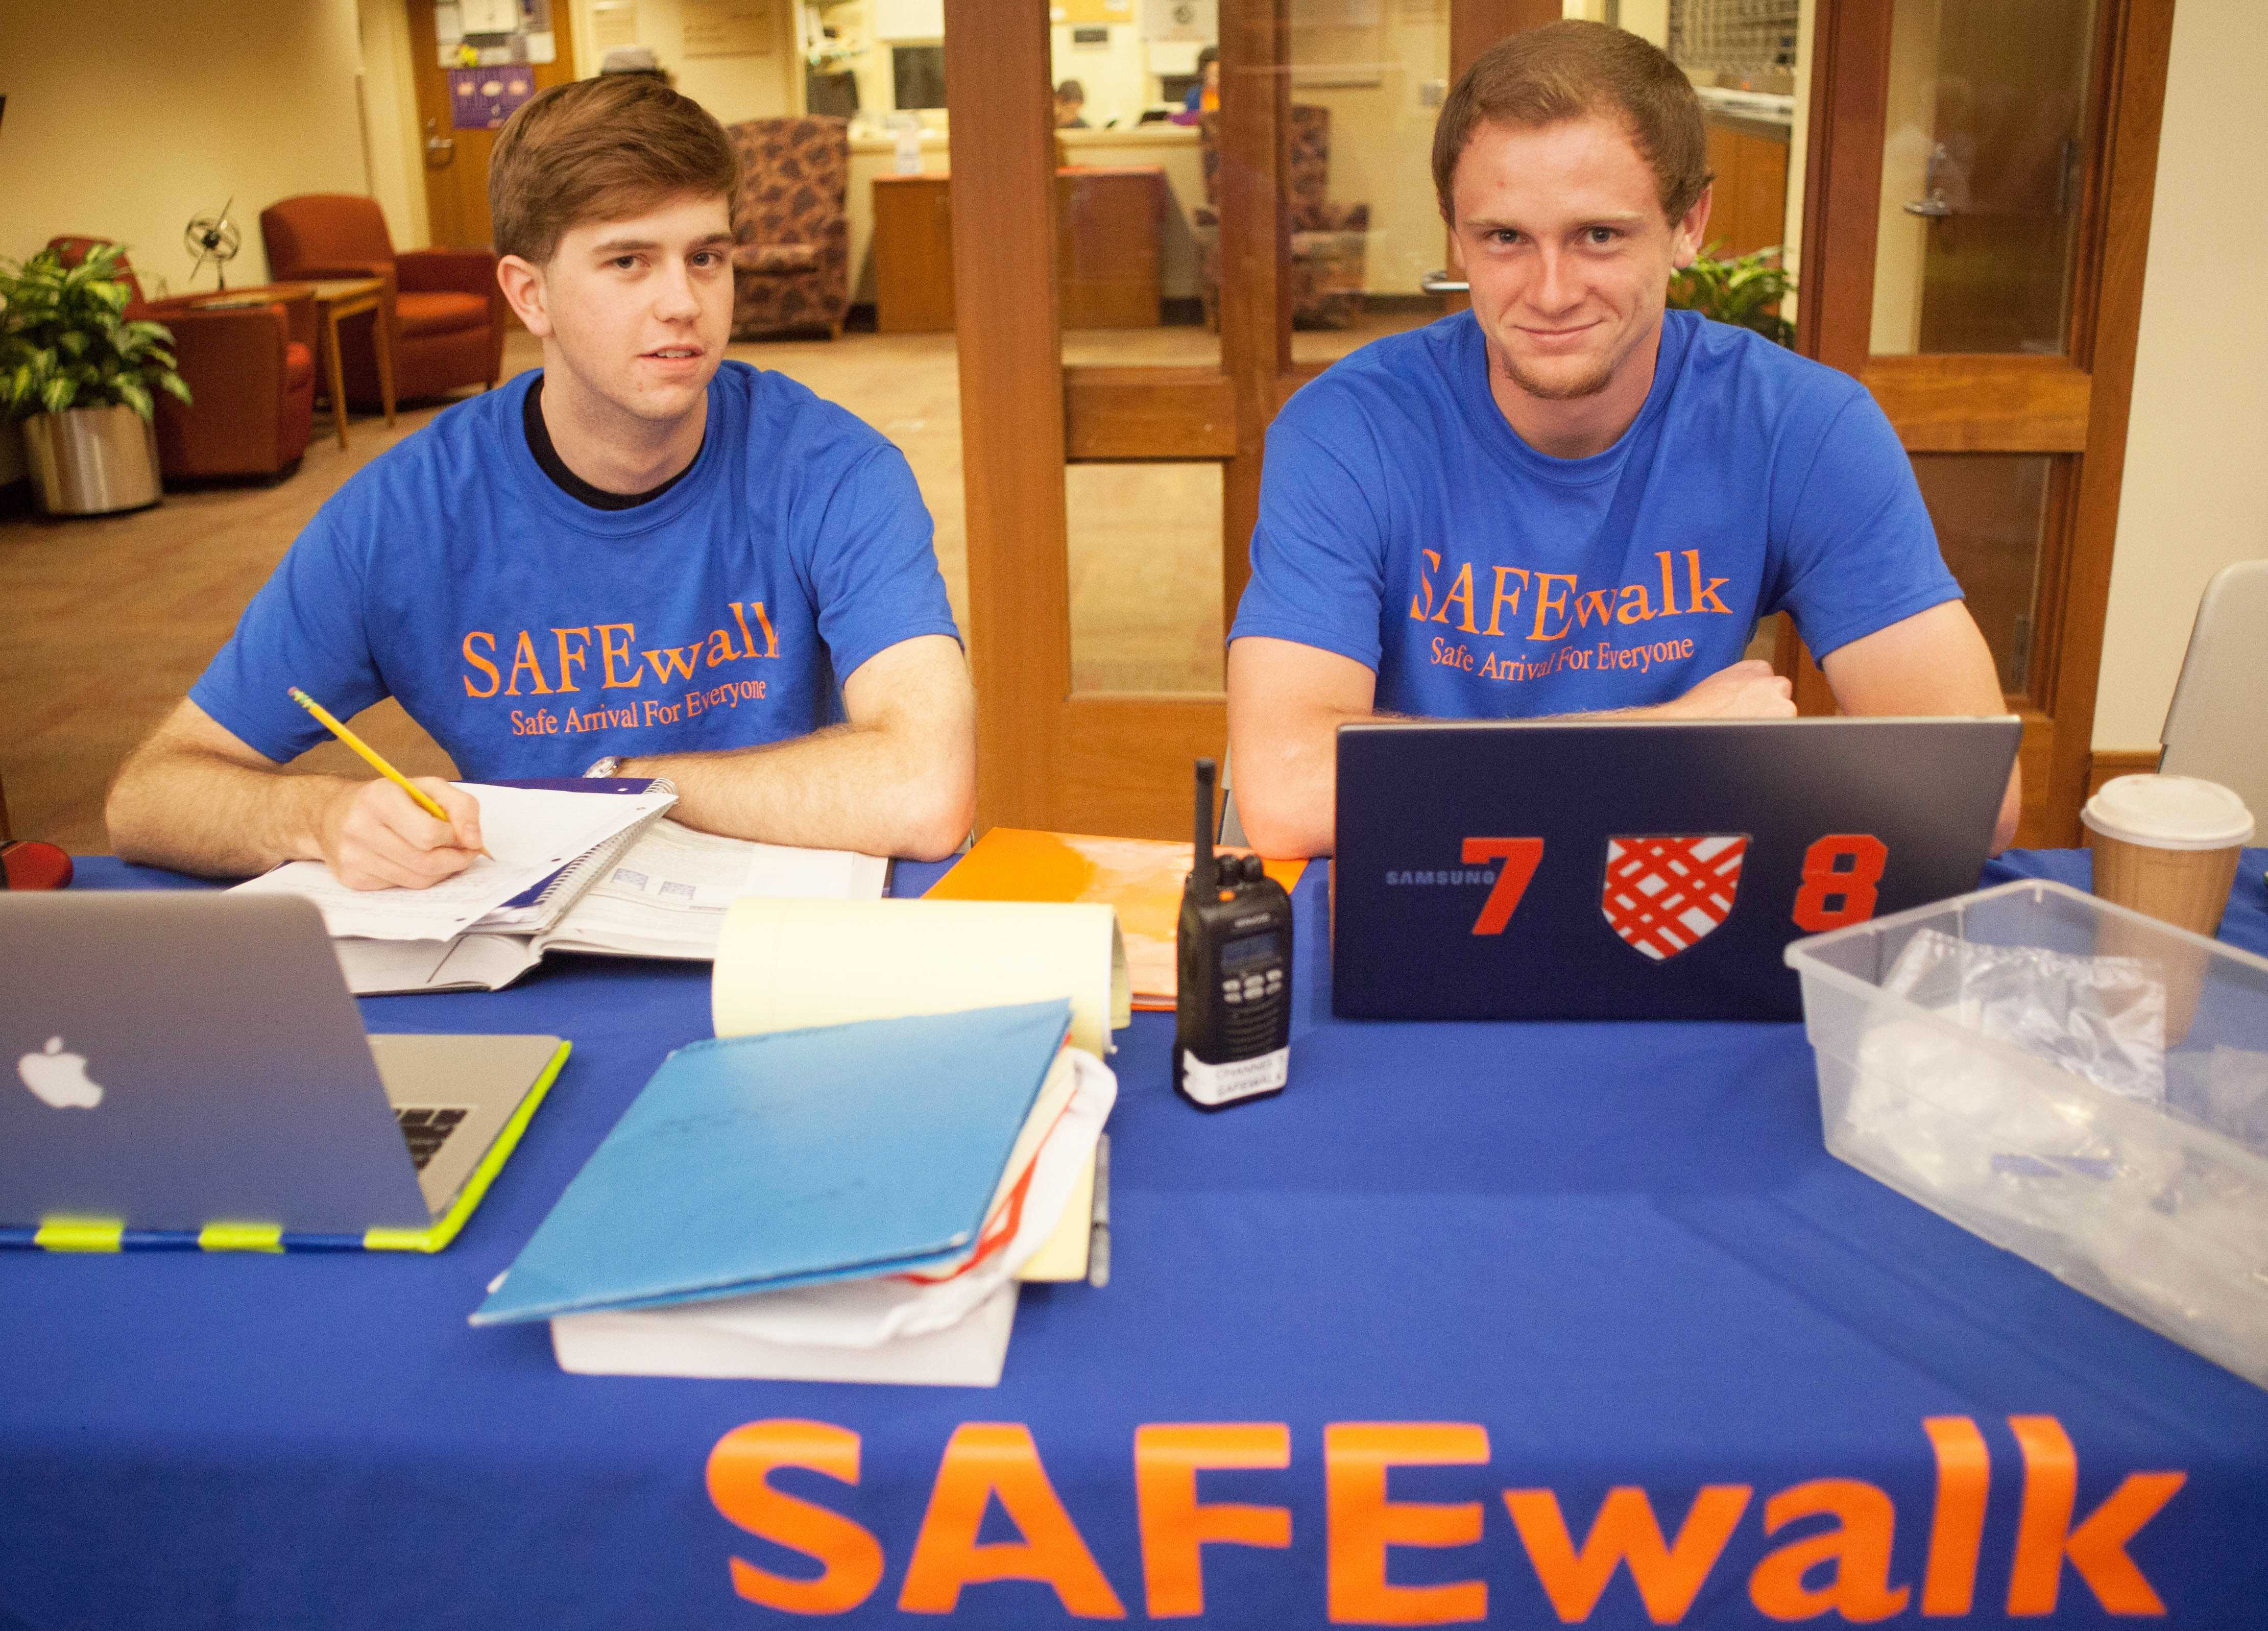 SAFEwalkers [left to right] Alex Coppins '15 and Bradley Cox '16 sit at the SAFEwalk desk located on the top floor of the Campus Center. SAFEwalkers are available from 9 p.m. to 1 a.m. daily to walk students to and from campus.